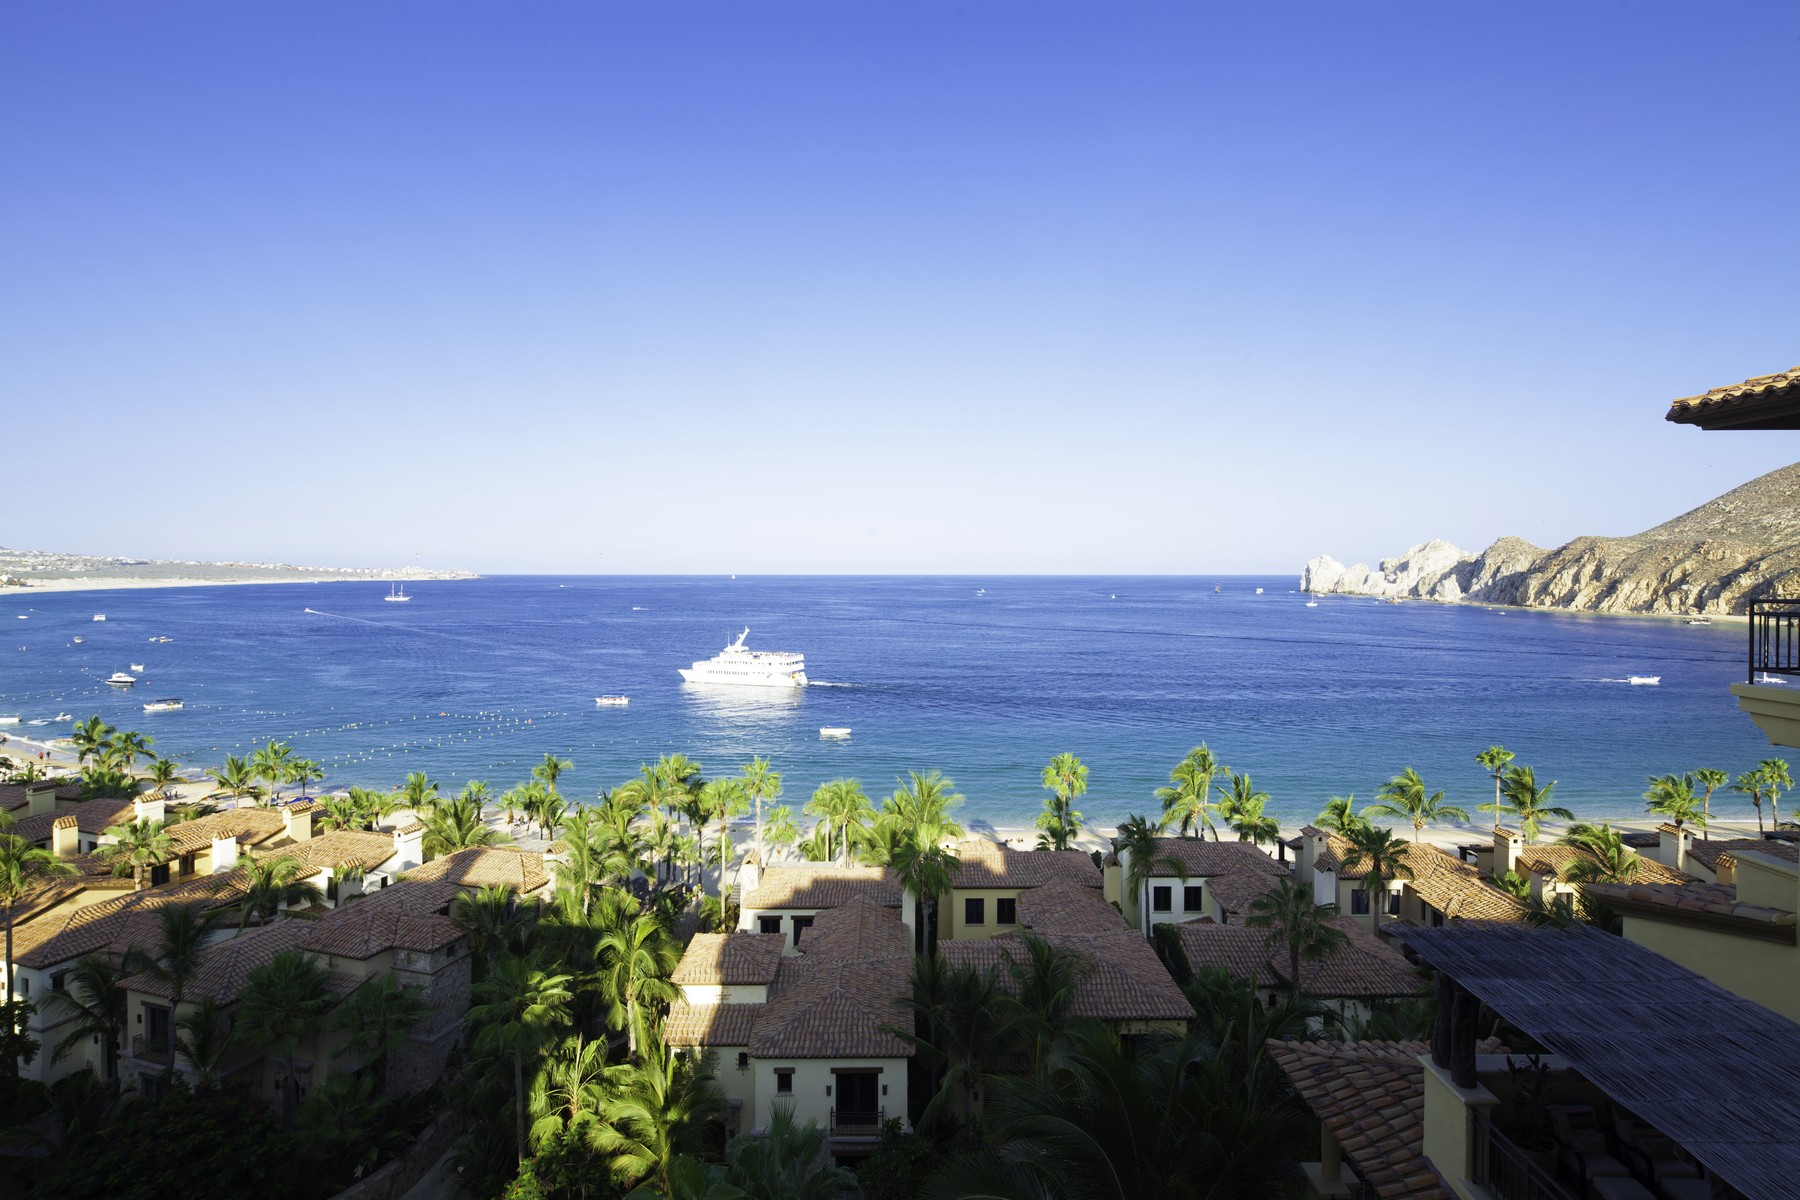 Condominium for Rent at Hacienda penthouse 4-601 Cabo San Lucas, Baja California Sur, Mexico